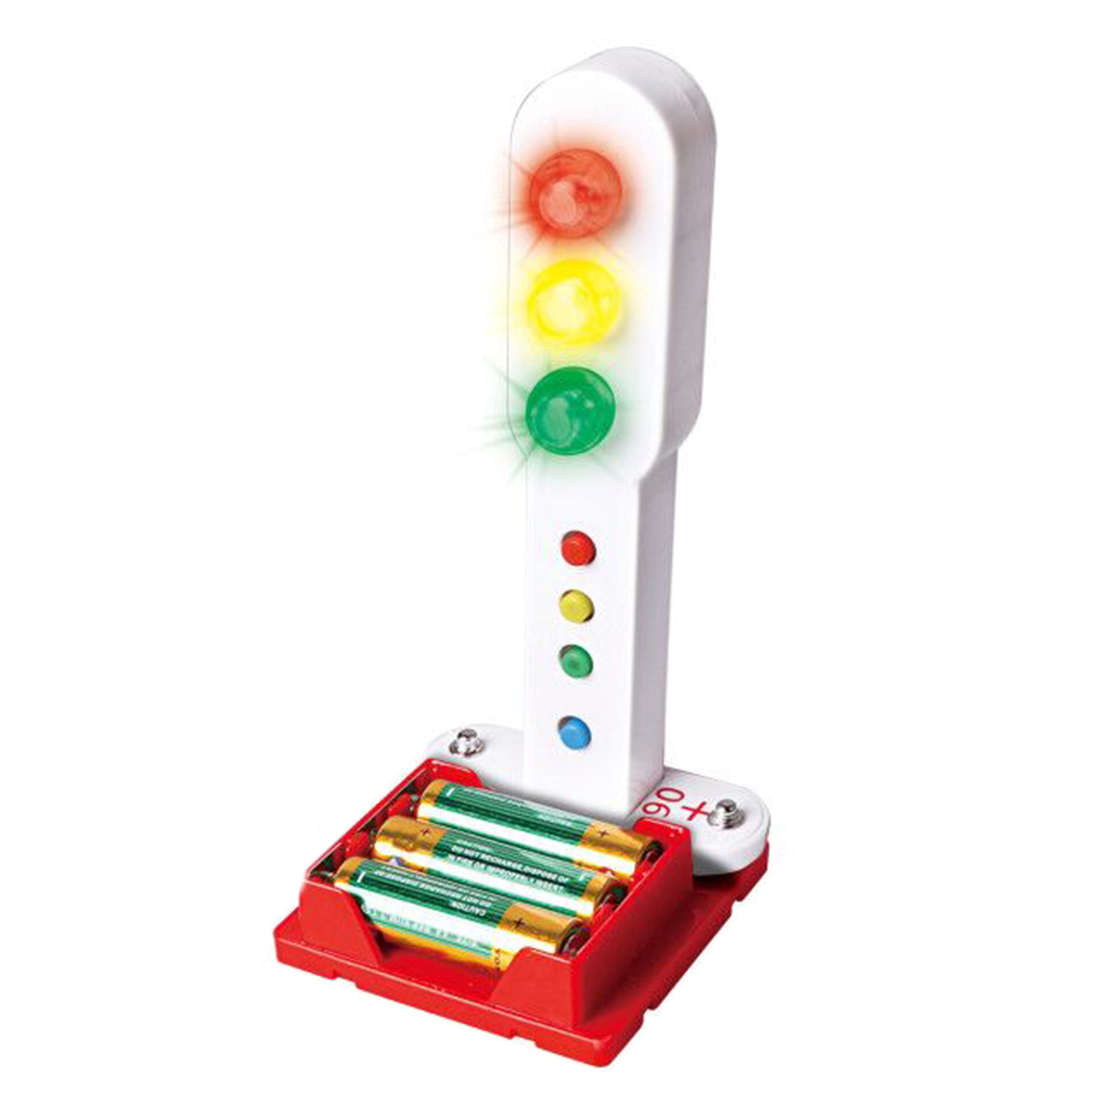 DIY Programmable Traffic Lights Electronic Circuits Science Experiment Kit For Children High Tech Pagoda + Christmas Tree